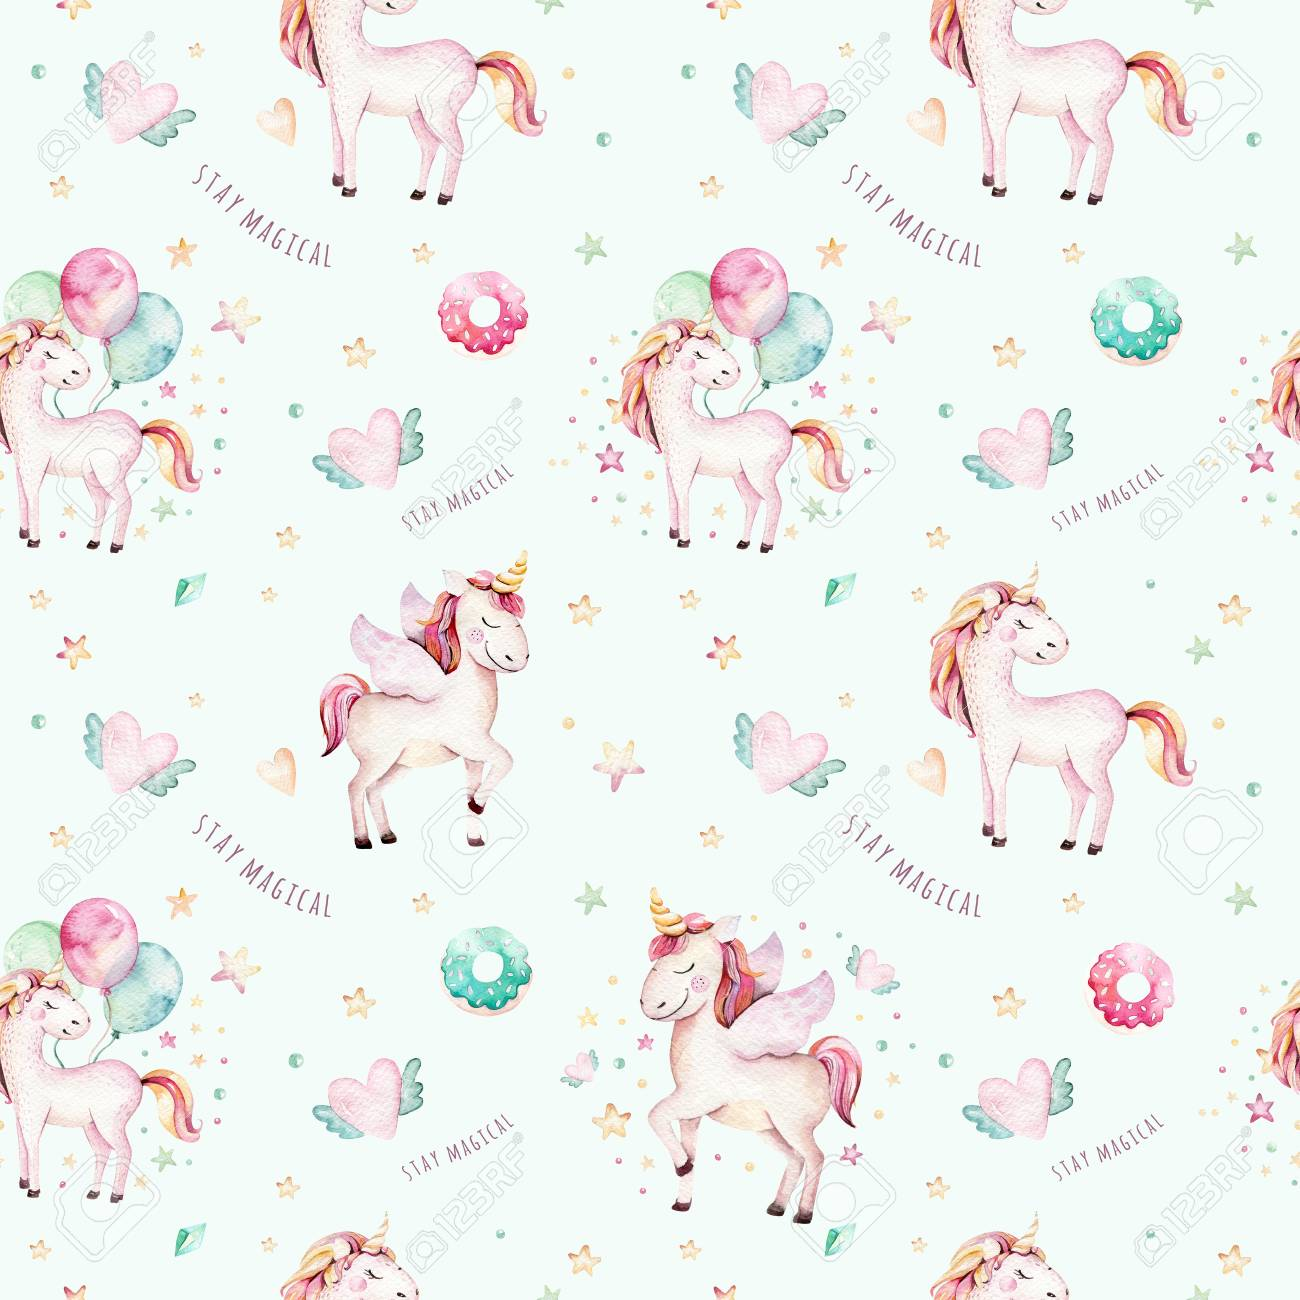 Isolated Cute Watercolor Unicorn Pattern Nursery Rainbow Unicorns Aquarelle Princess Unicornscollection Trendy Pink